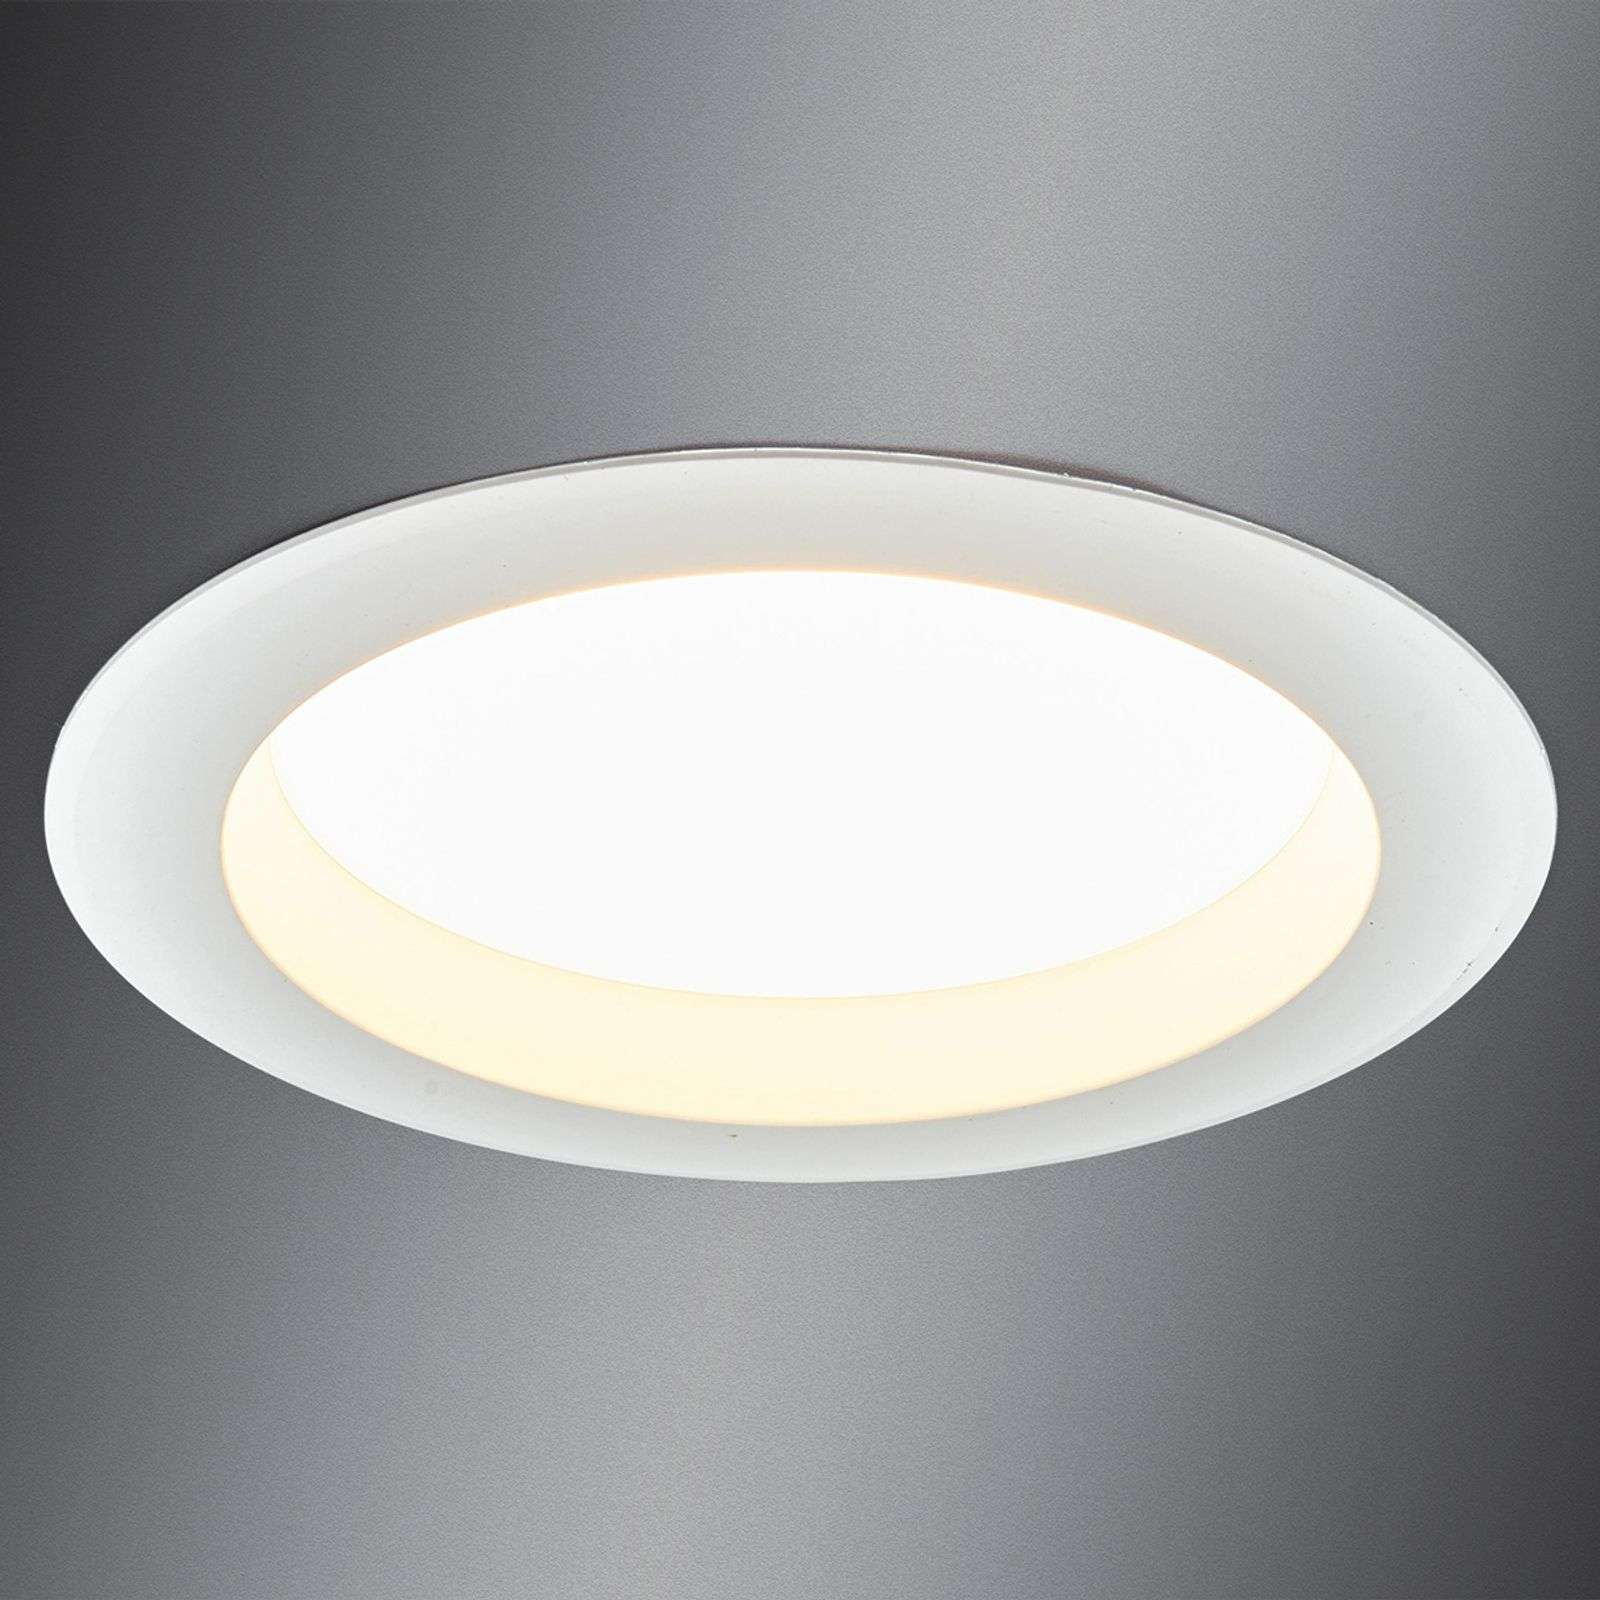 Downlight LED lumineux Arian, 17,4 cm, 15 W